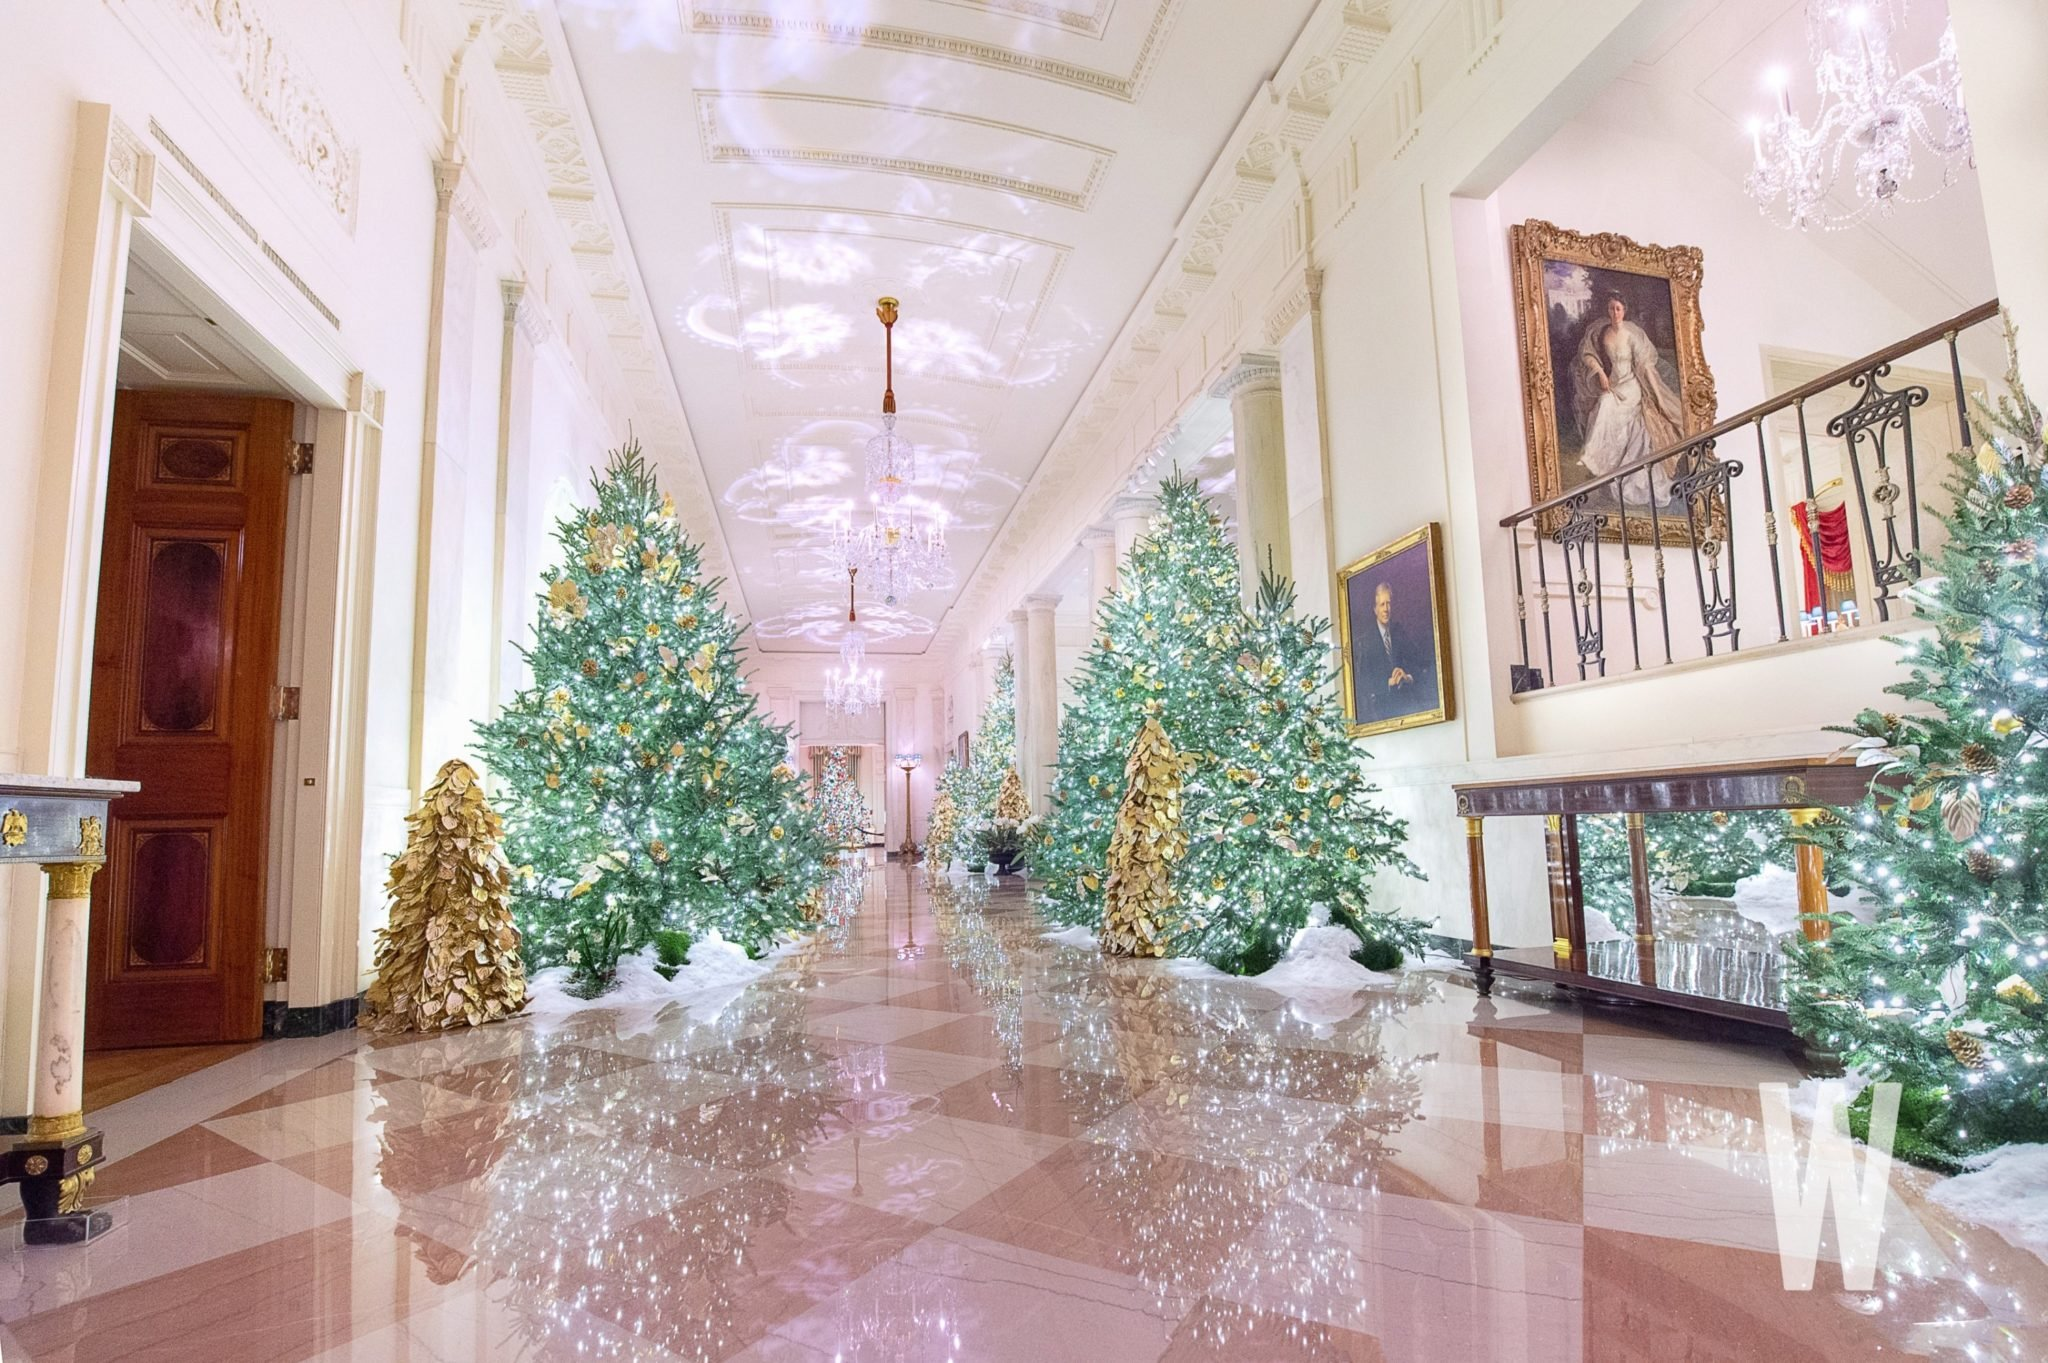 PHOTOS: The 2019 White House Christmas Decorations